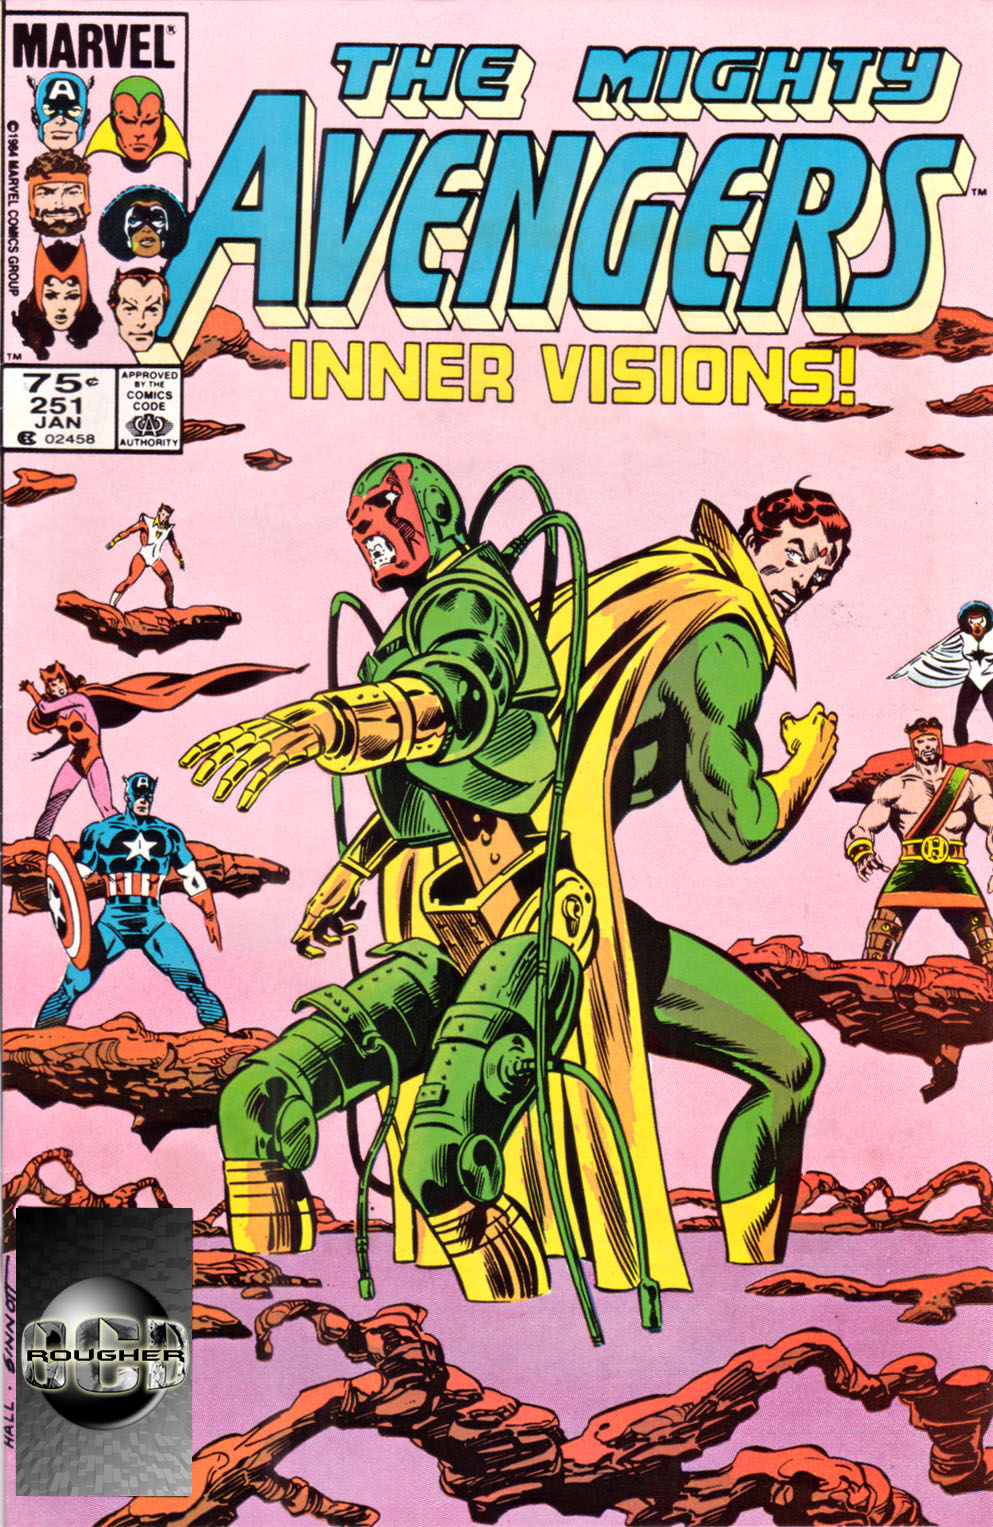 The Avengers (1963) 251 Page 1